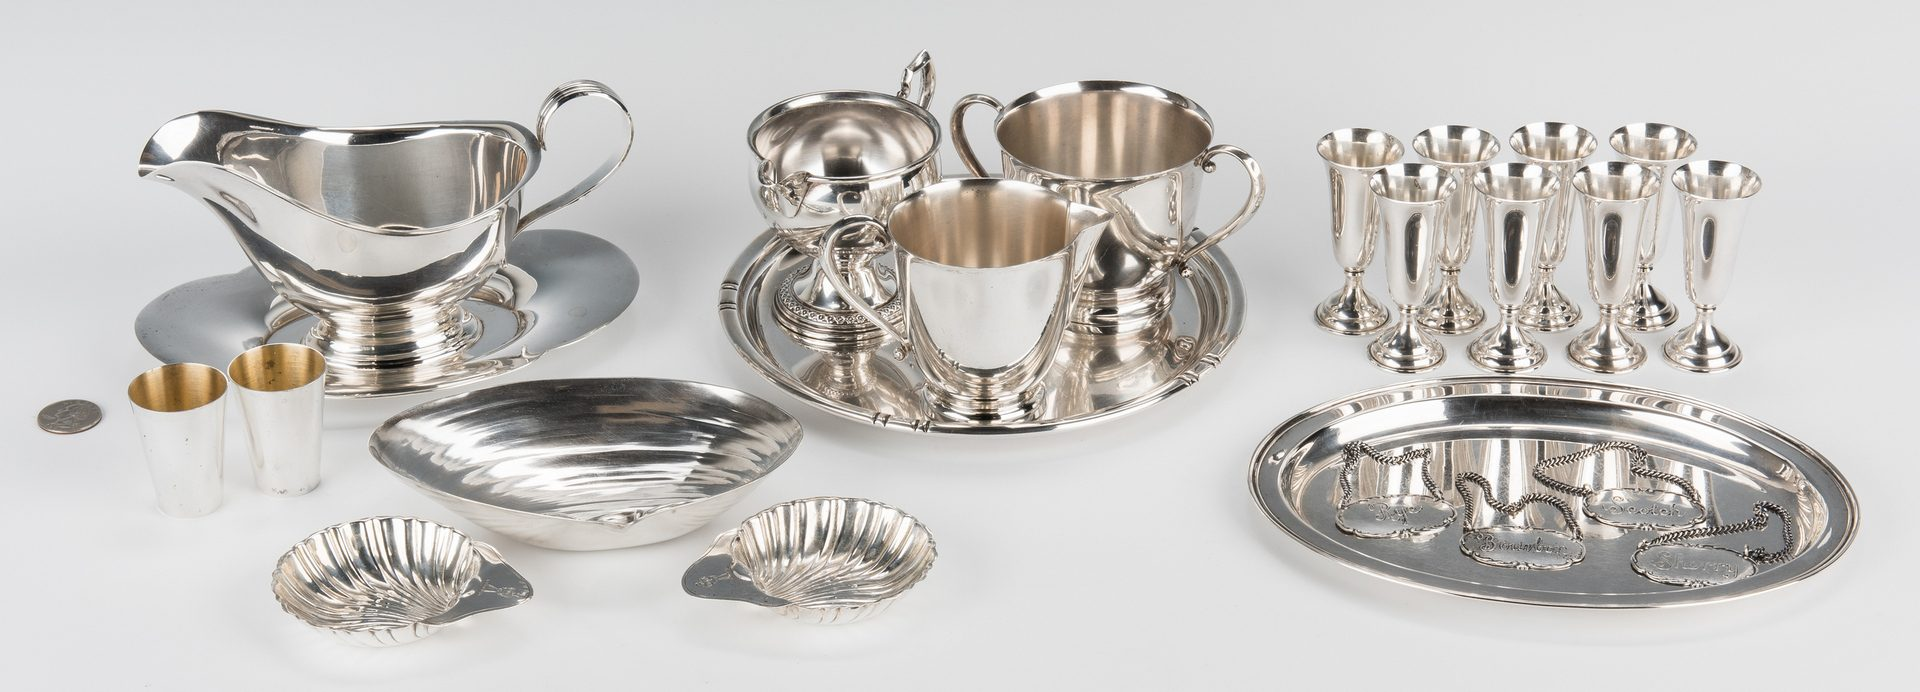 Lot 694: 23 Assorted Sterling Silver, incl. Cordials